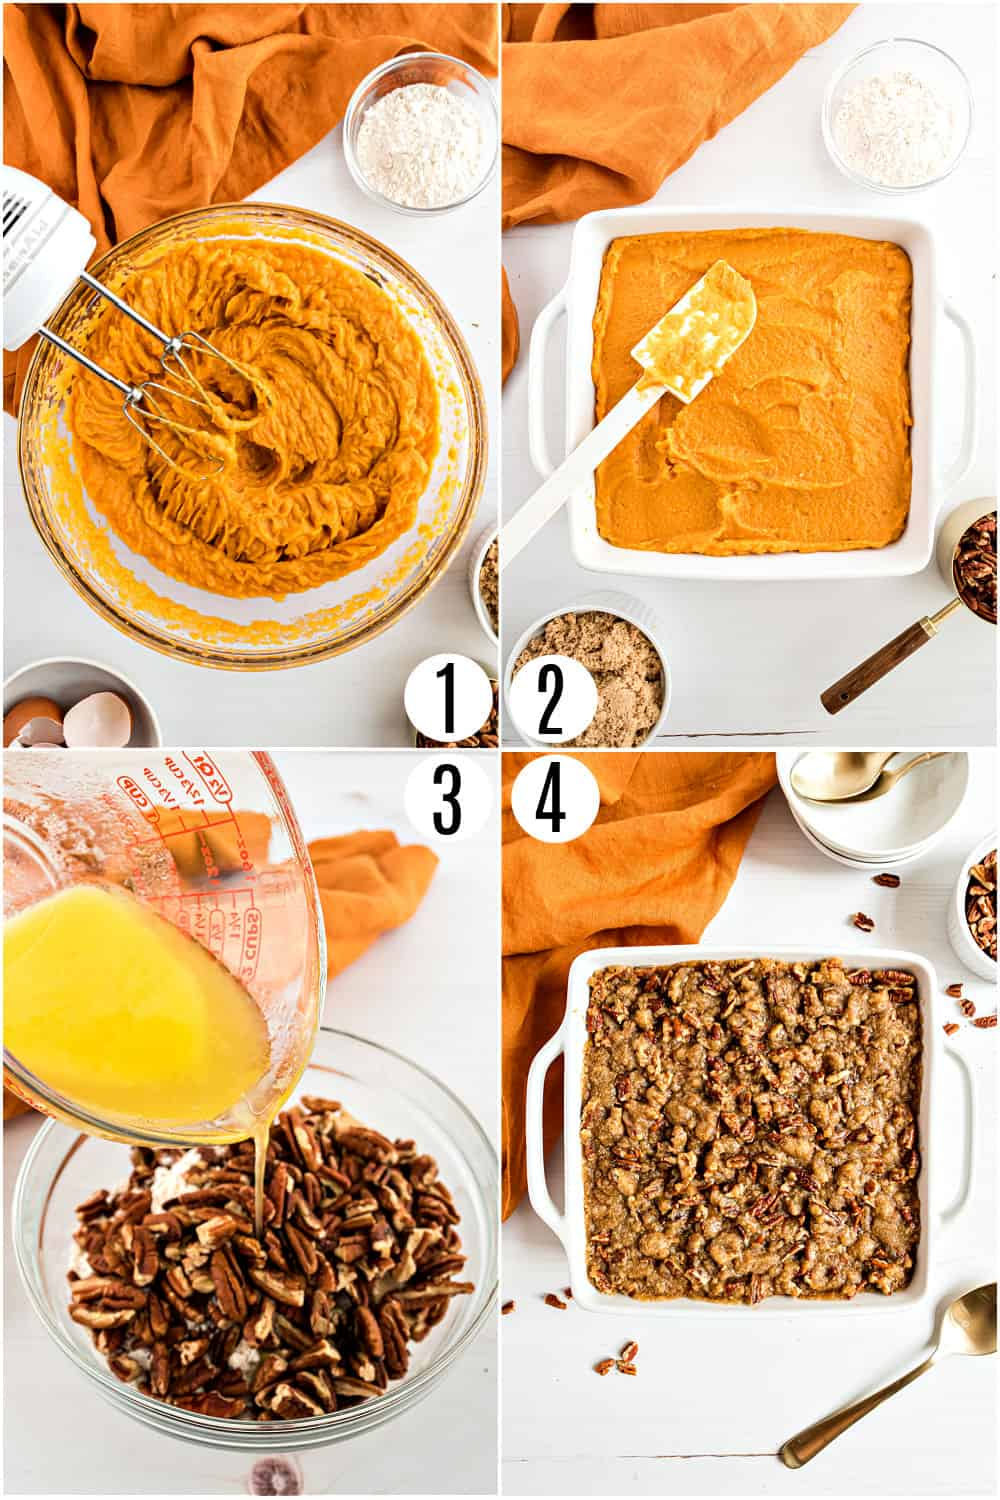 Step by step photos showing how to make sweet potato casserole.